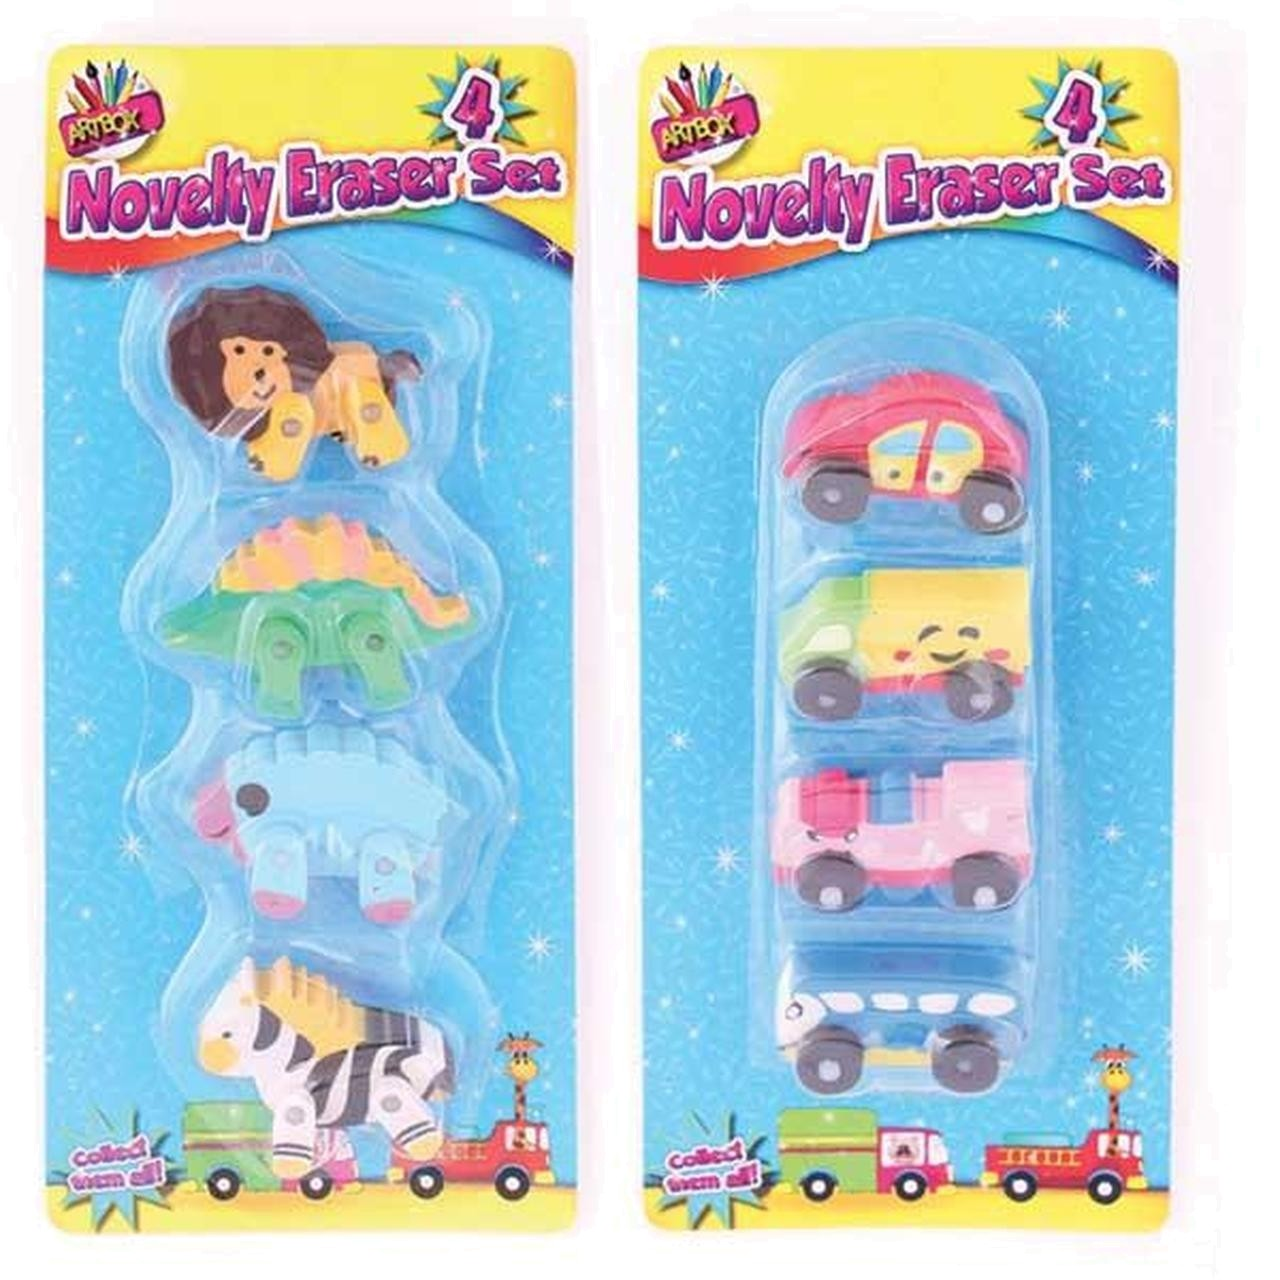 NOVELTY ERASER SET